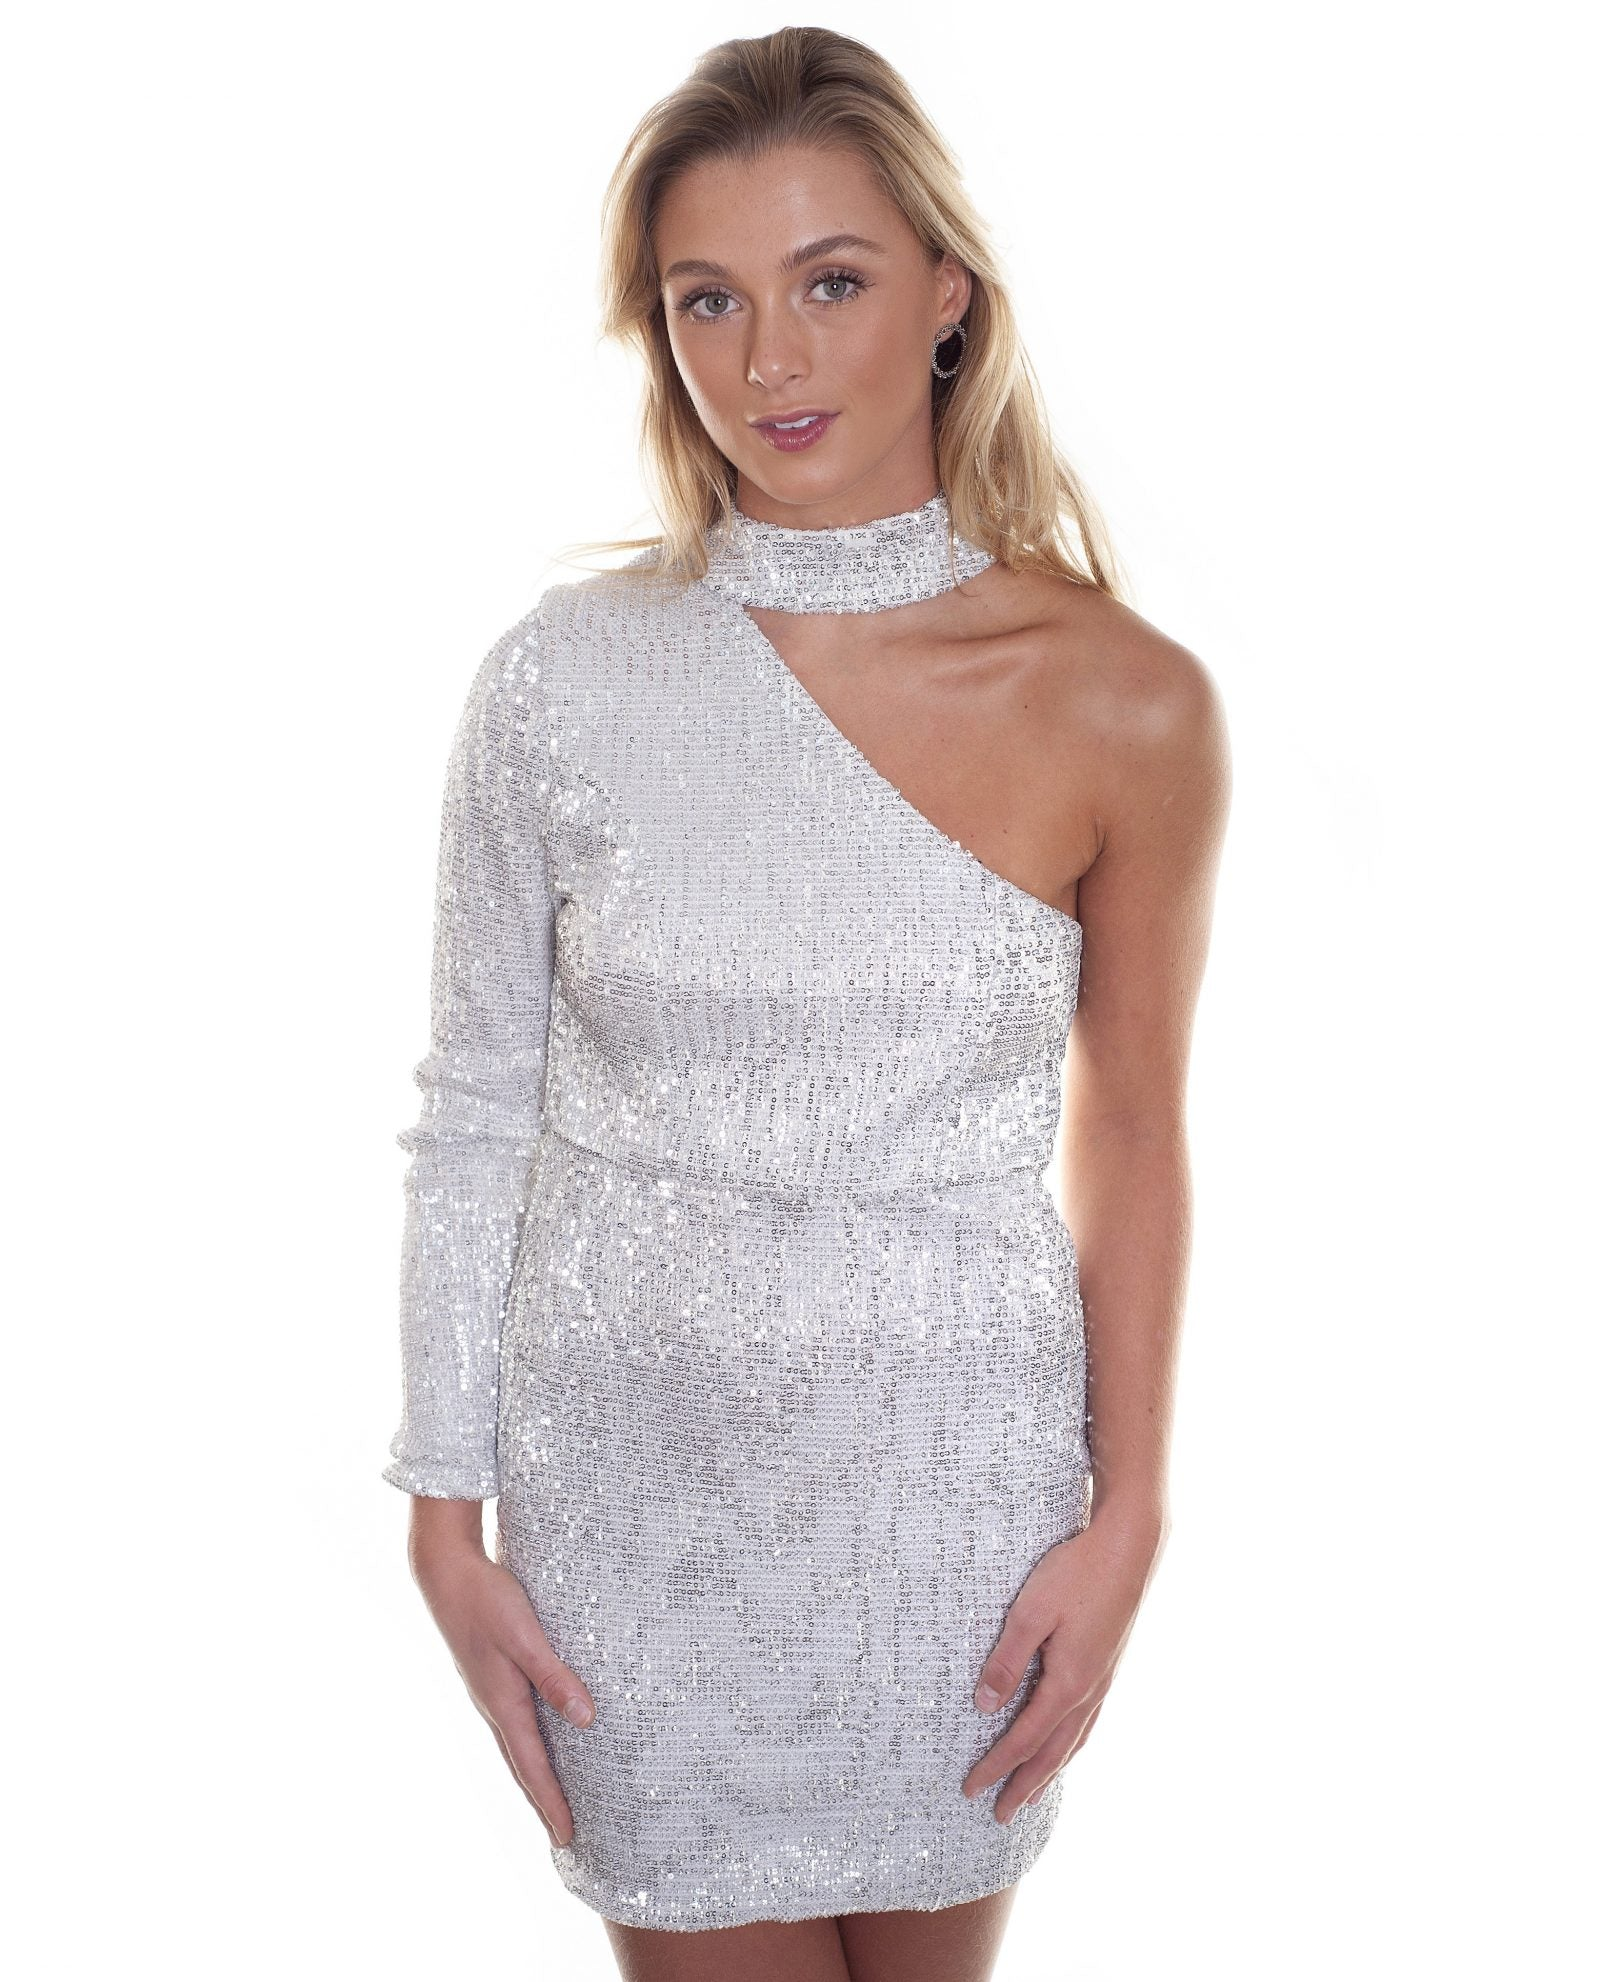 HIRE SILVER SEQUIN MINI DRESS WITH CHOKER DETAIL | Hirestreetuk.com